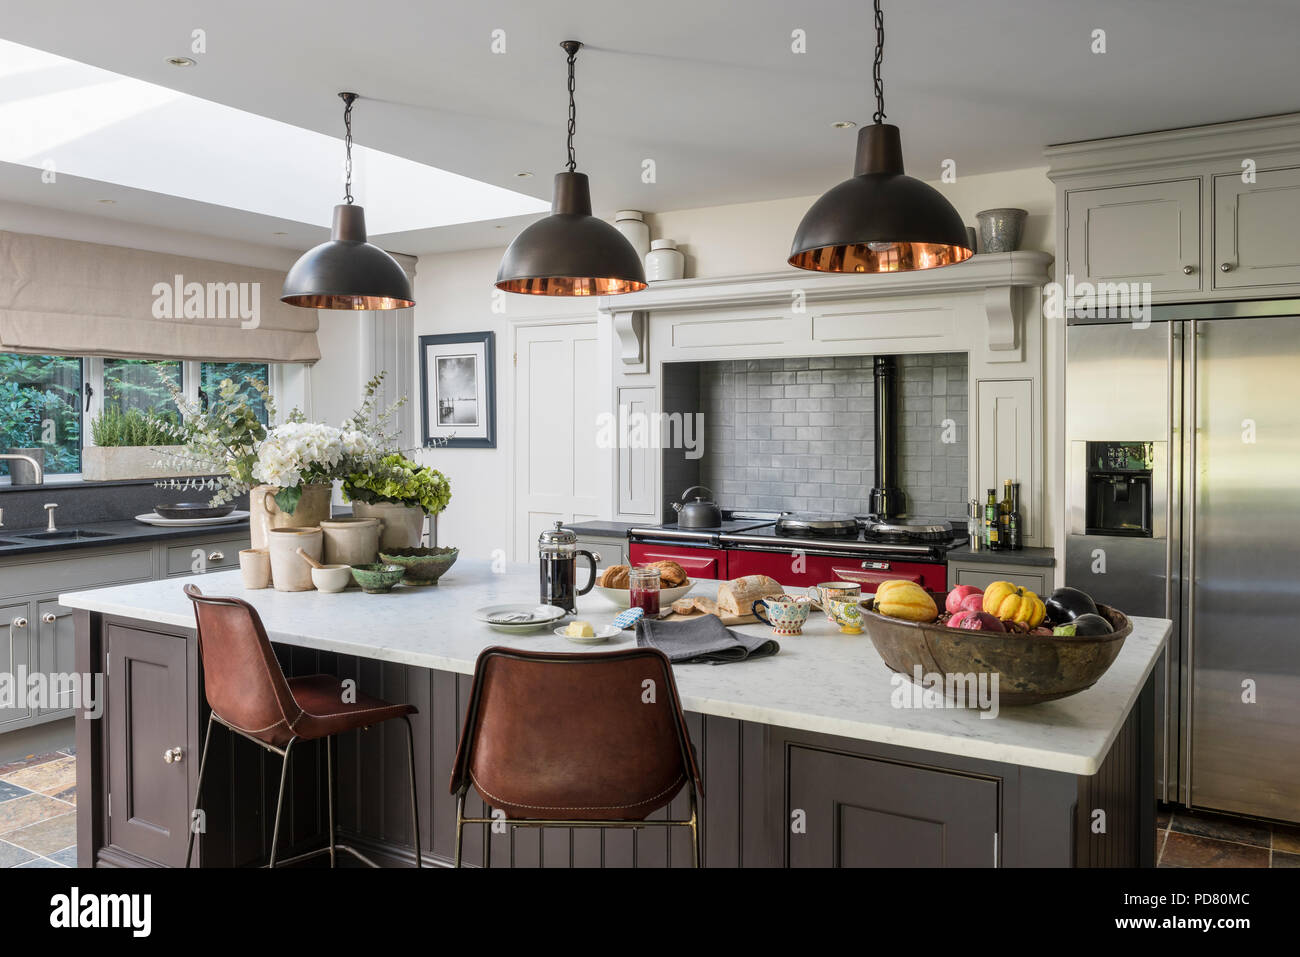 Bespoke kitchen island by Thomas Ford & Sons is painted in ...